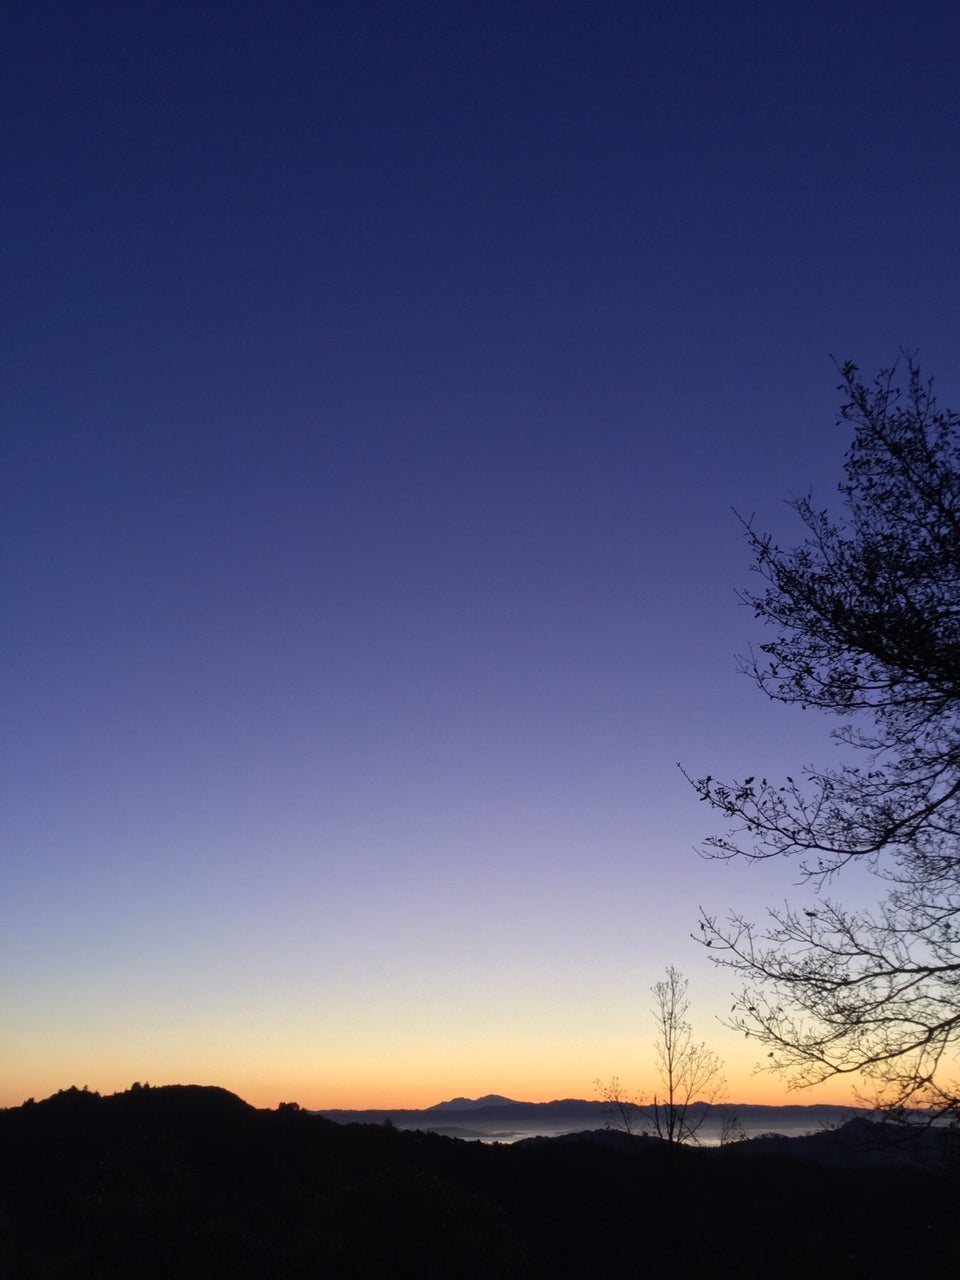 Deep blue sky with a gradient to a light purple above a yellow orange horizon with Mount Diablo in the distance, a sliver of a barely lit bay, dark outline of nearby hills.